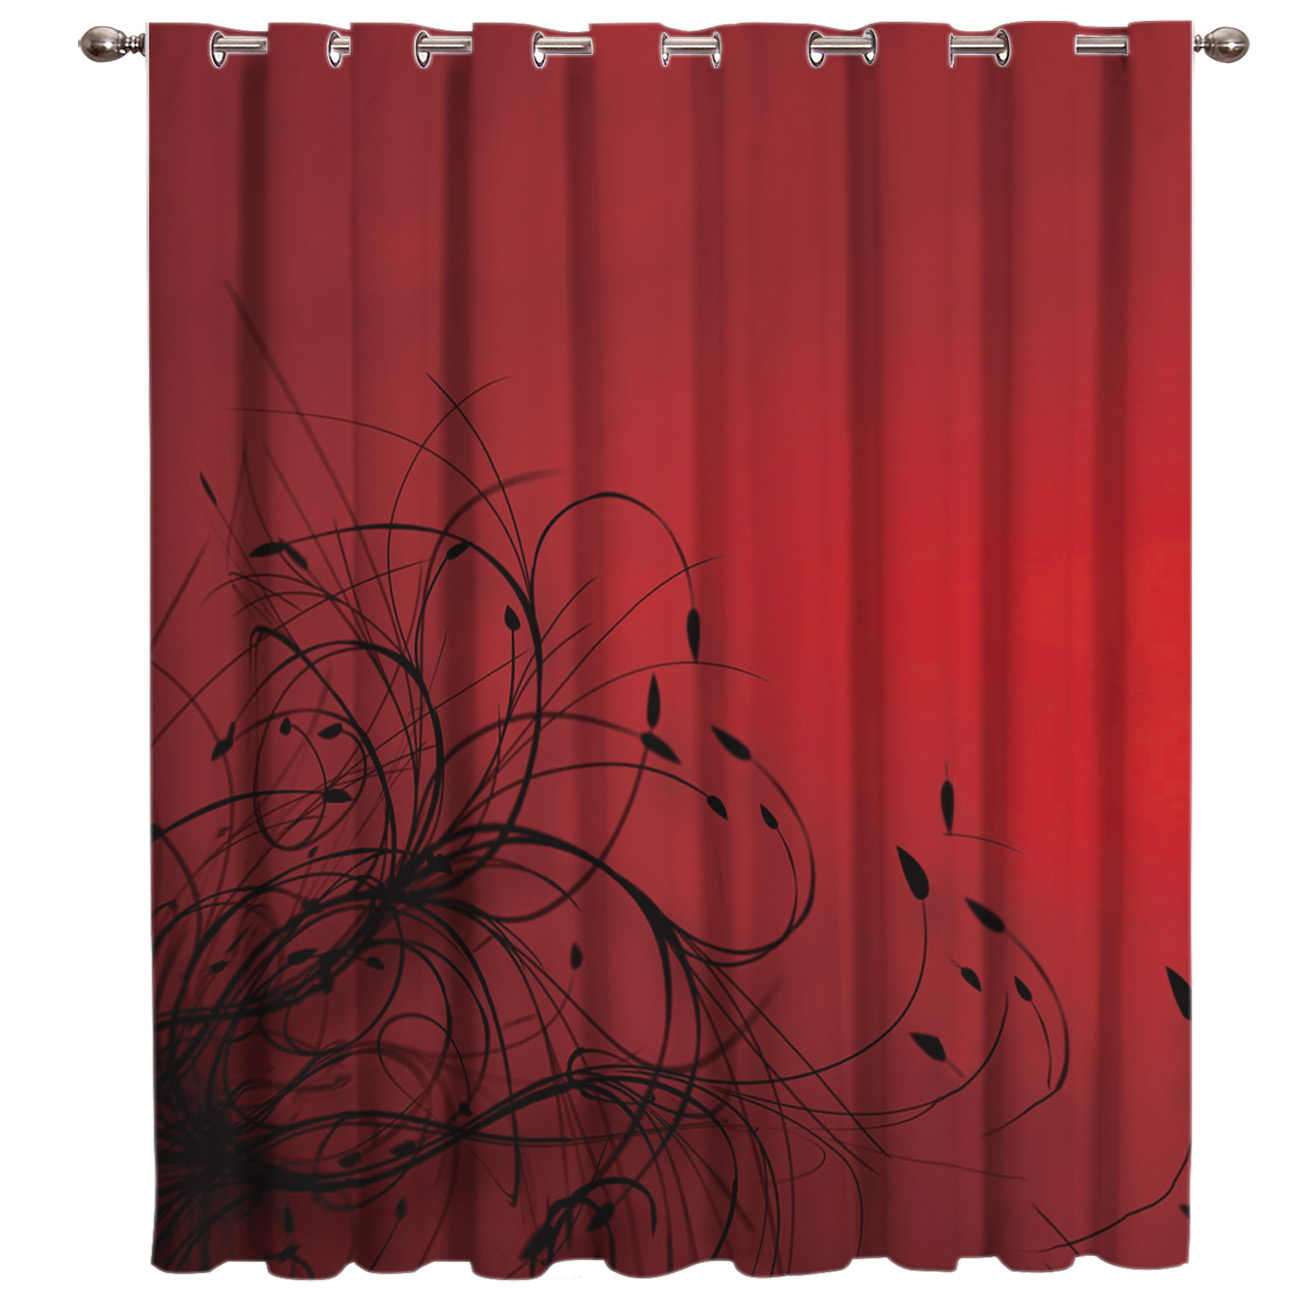 Simple Red-Black Gradient Abstract Flowers Window Treatments For Large Windows Blackout Curtains Window Dressing Room Darkening